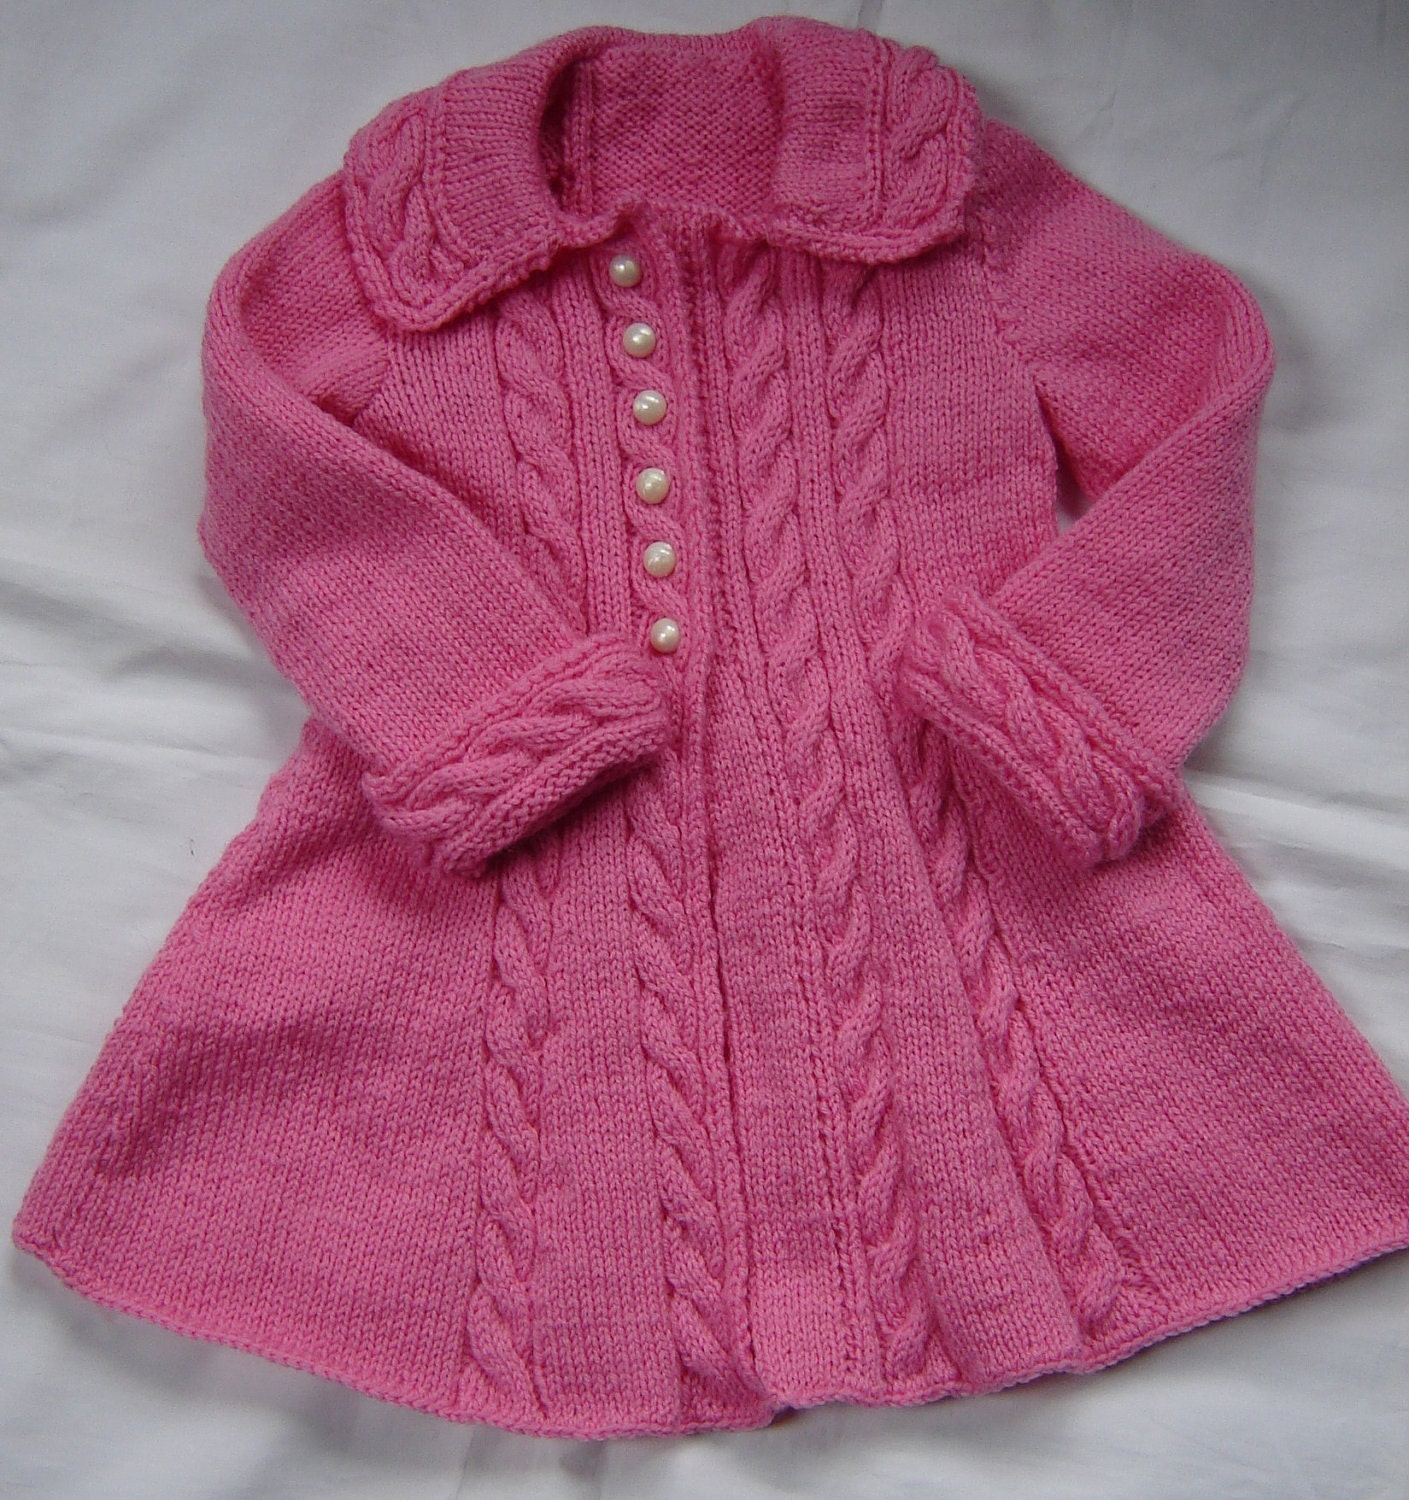 Knitting Sweaters For Girls : Baby girls toddler sweater coat swing style hand knit crochet